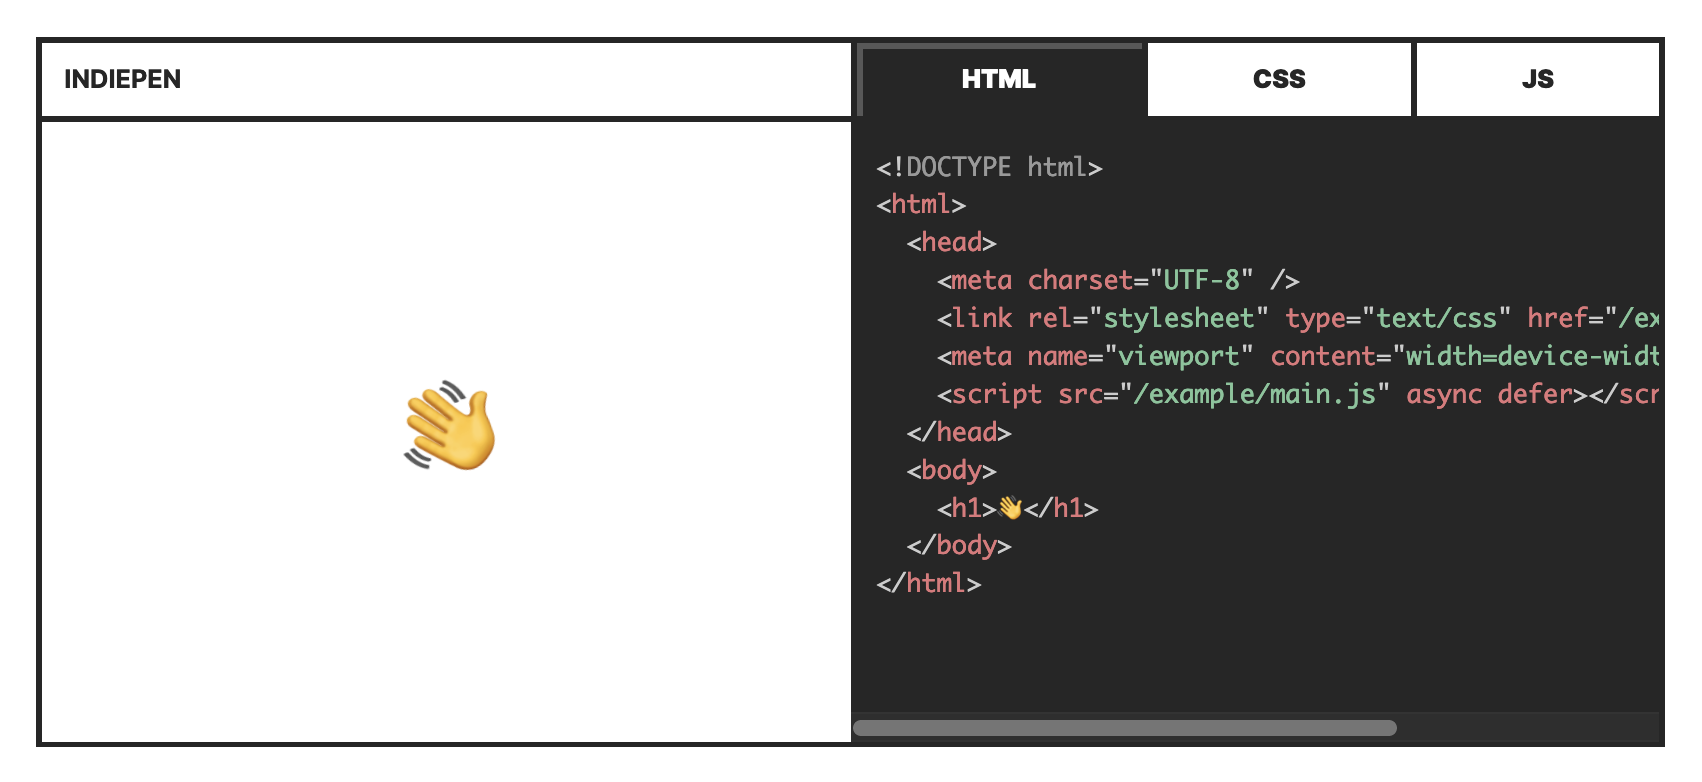 Indiepen code editor that looks similar to codepen